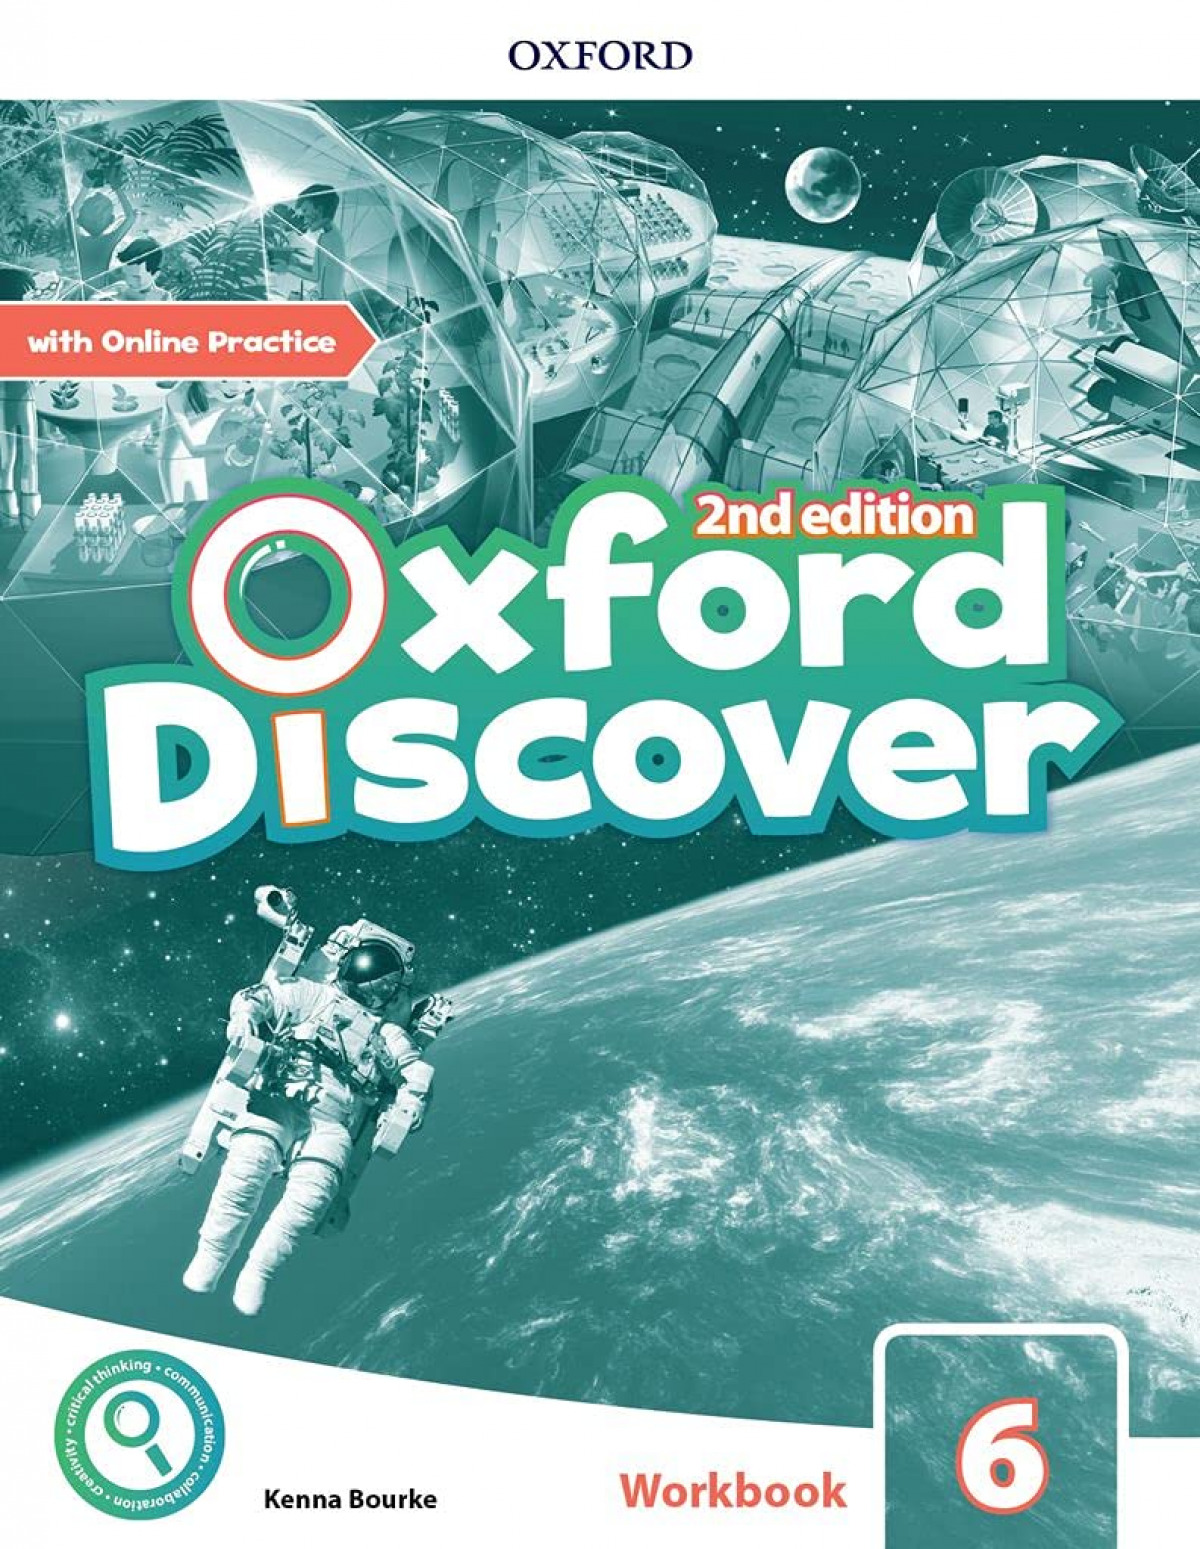 OXFORD DISCOVER 6 PRIMARY WORKBOOK WITH ONLINE PRACTICE SECOND EDITION